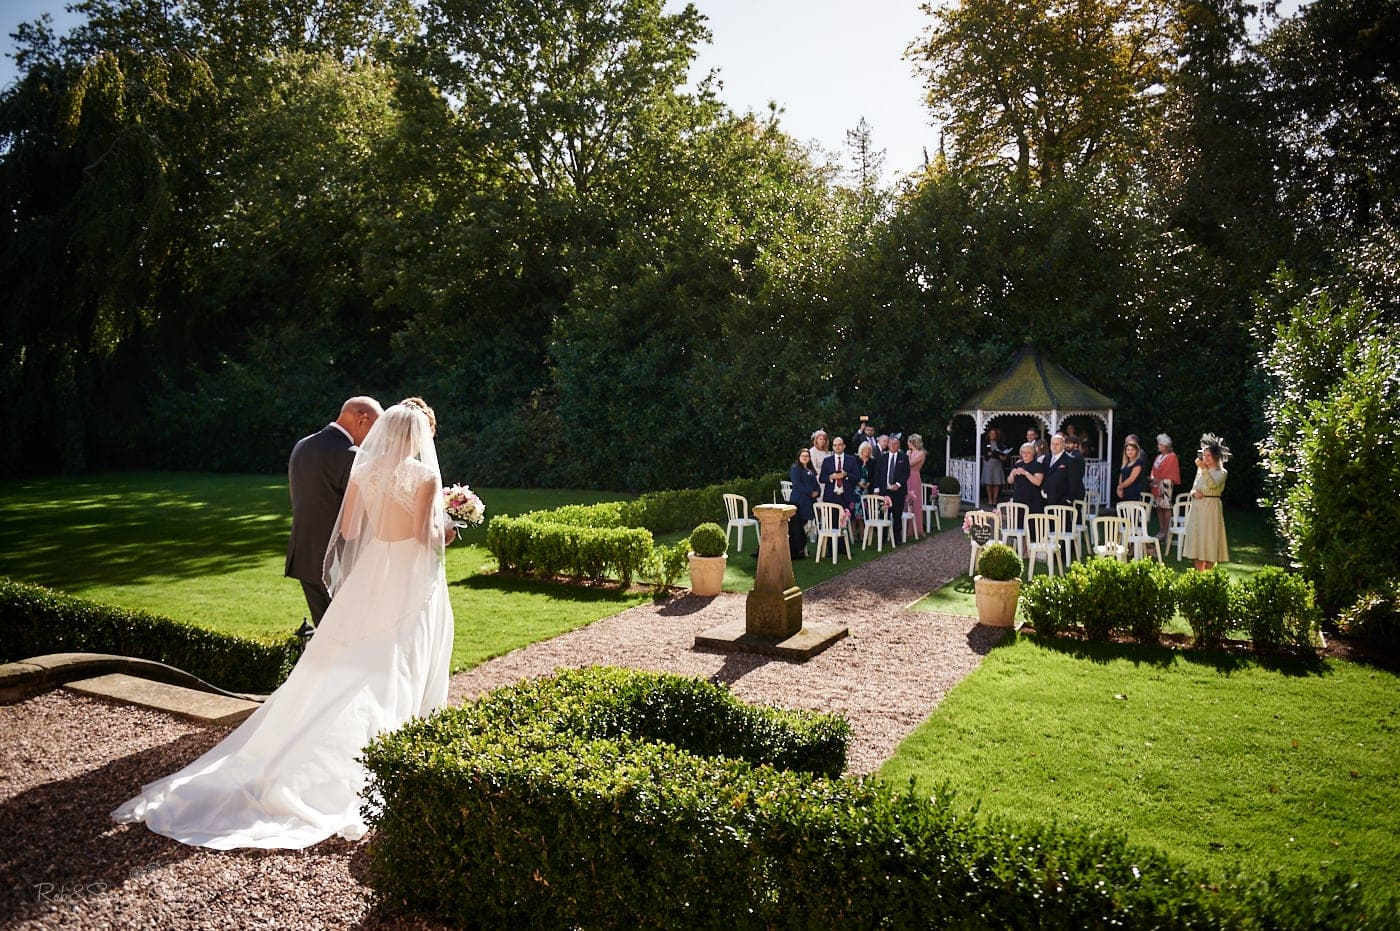 Bride and father walk up aisle for outdoor wedding ceremony at Pendrell Hall as guests watch